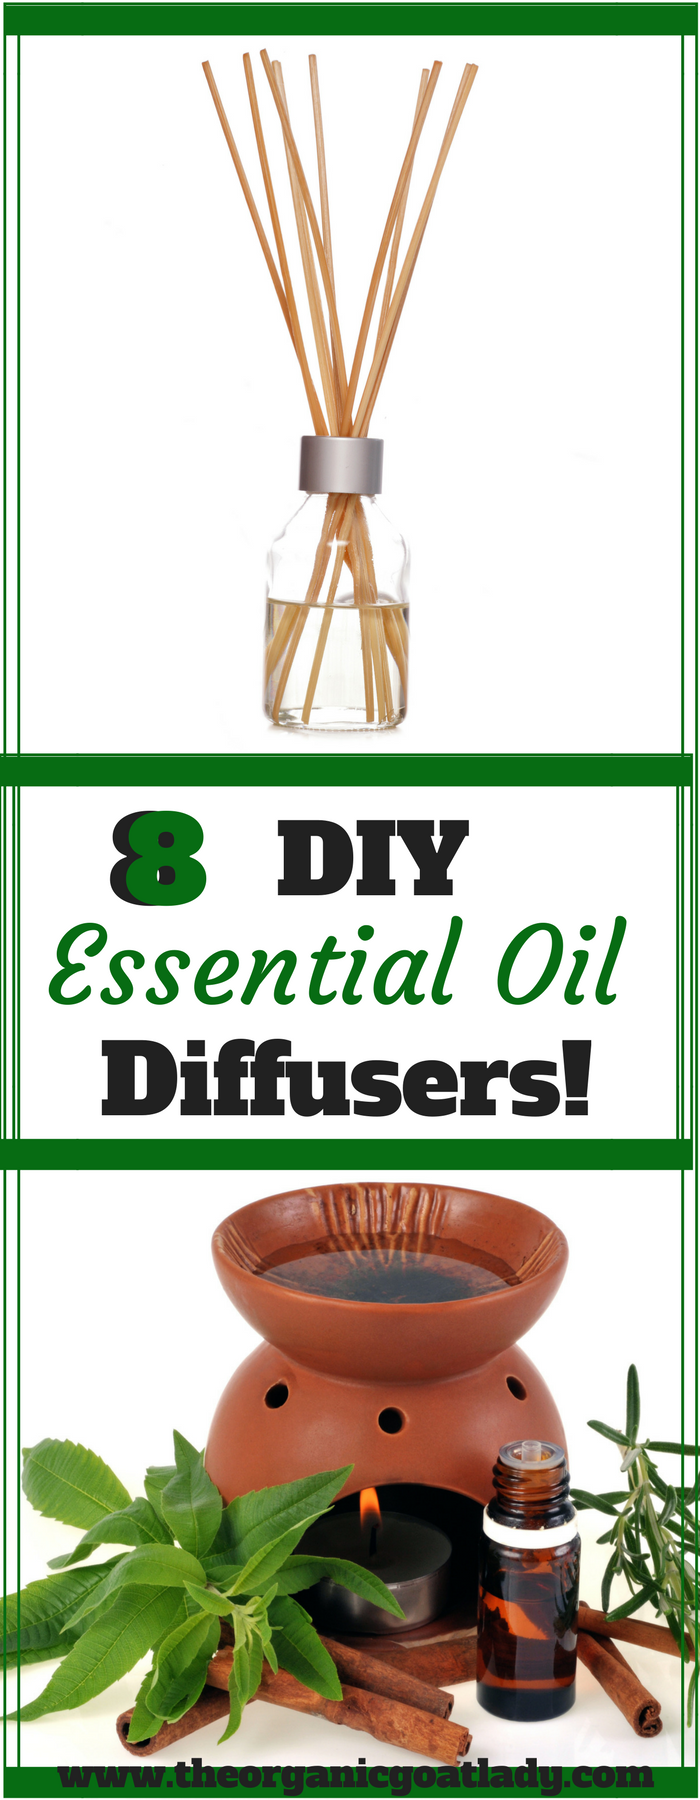 8 DIY Essential Oil Diffusers!